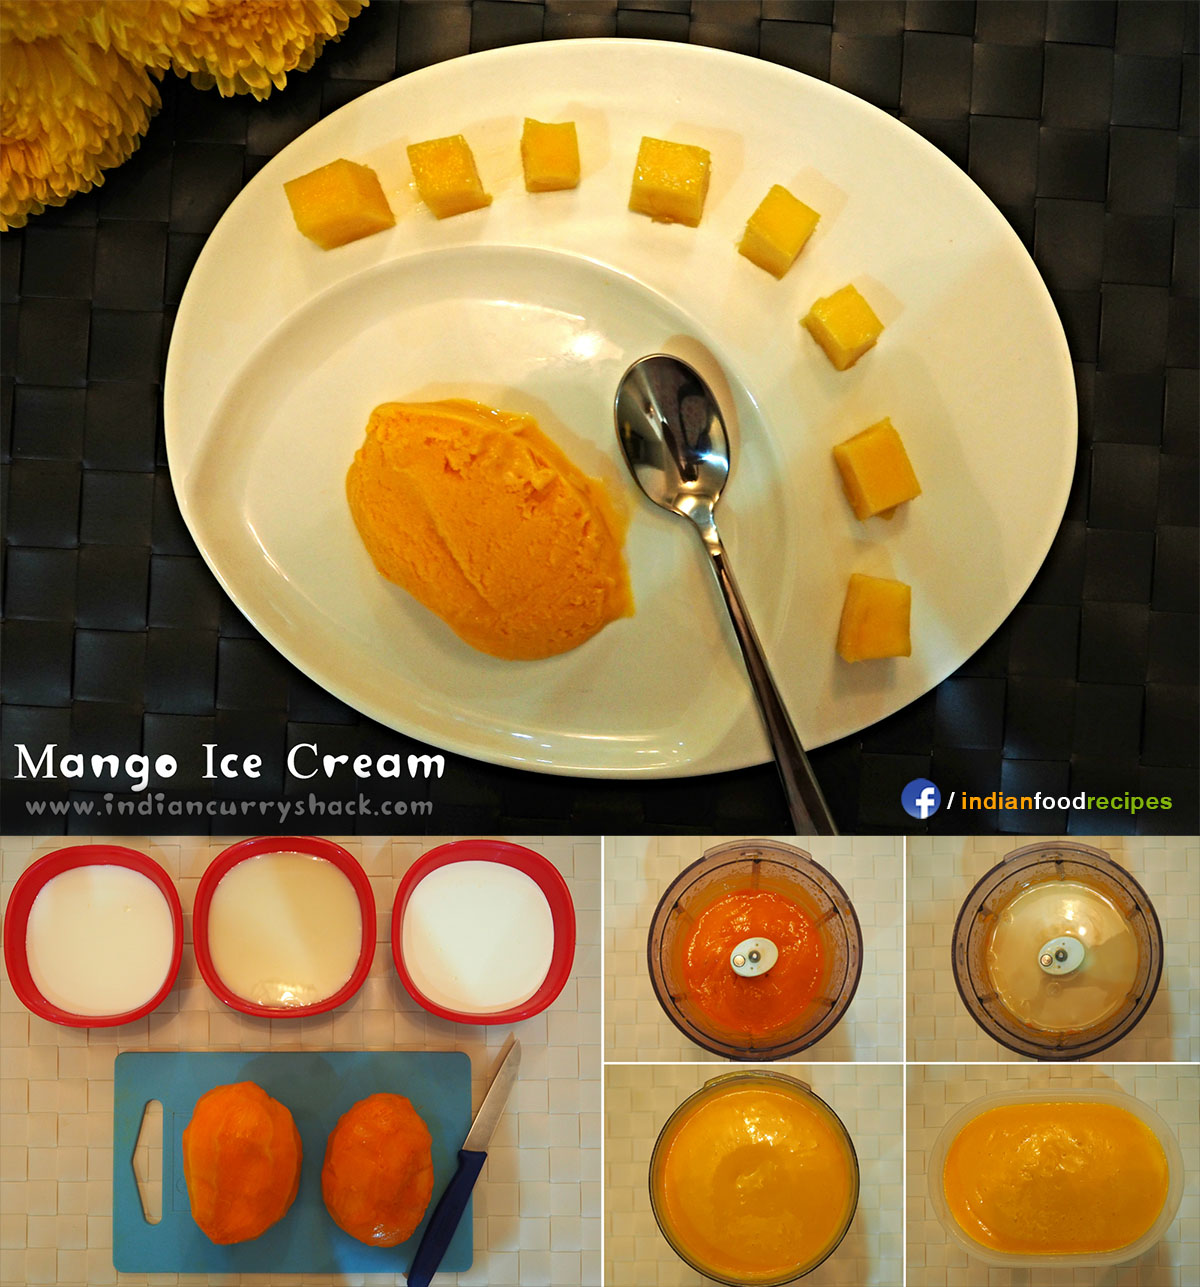 Mango Ice Cream recipe step by step